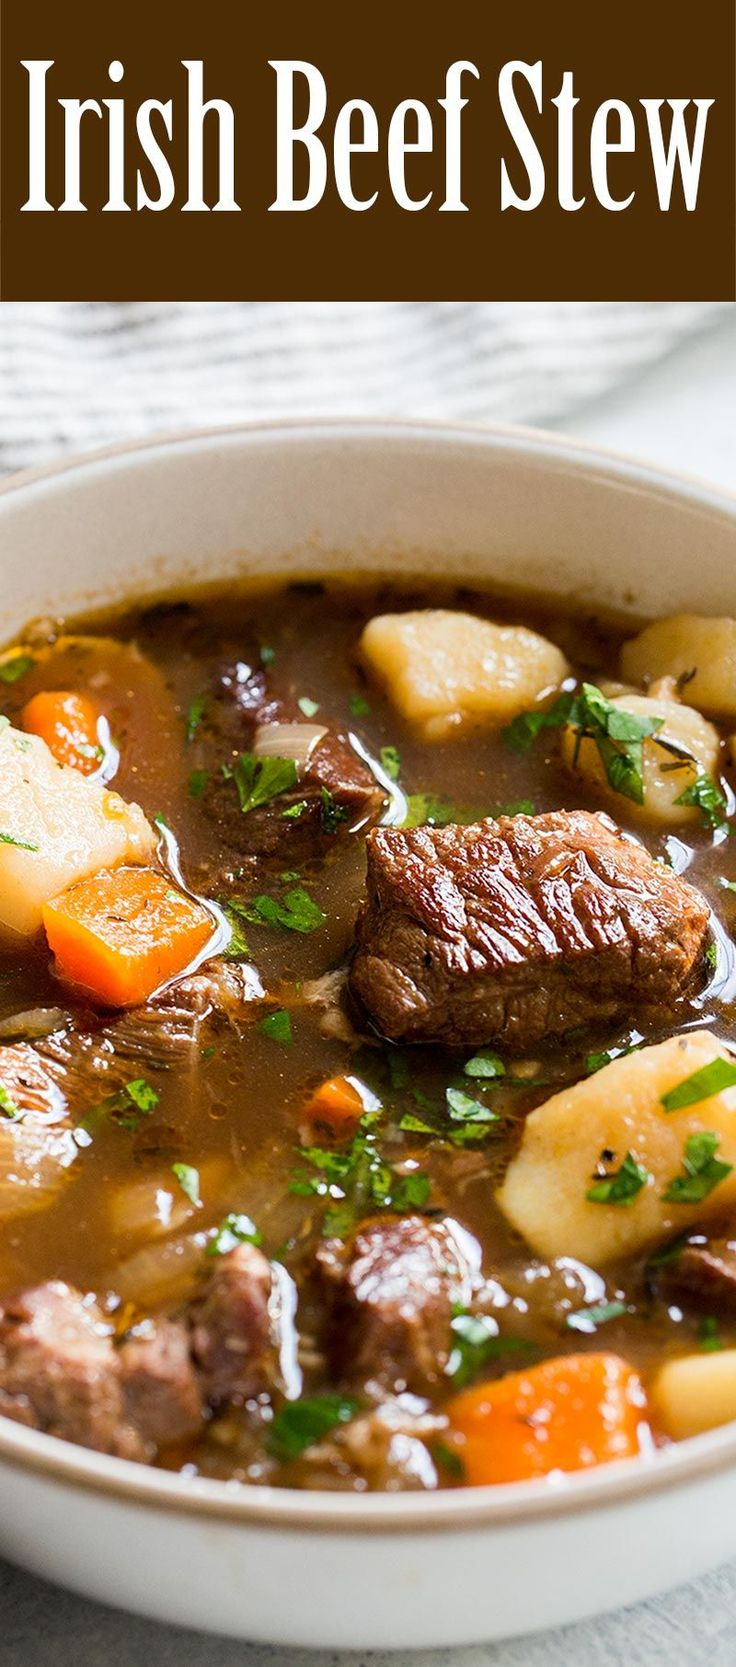 BEST Irish Beef Stew! Made with beef, garlic, stock, Irish Guinness stout, red wine, potatoes, carrots, and onions. A hearty stew perfect for celebrating St. Patrick's Day! #BeefStew #IrishStew #Irish #StPatricksDay